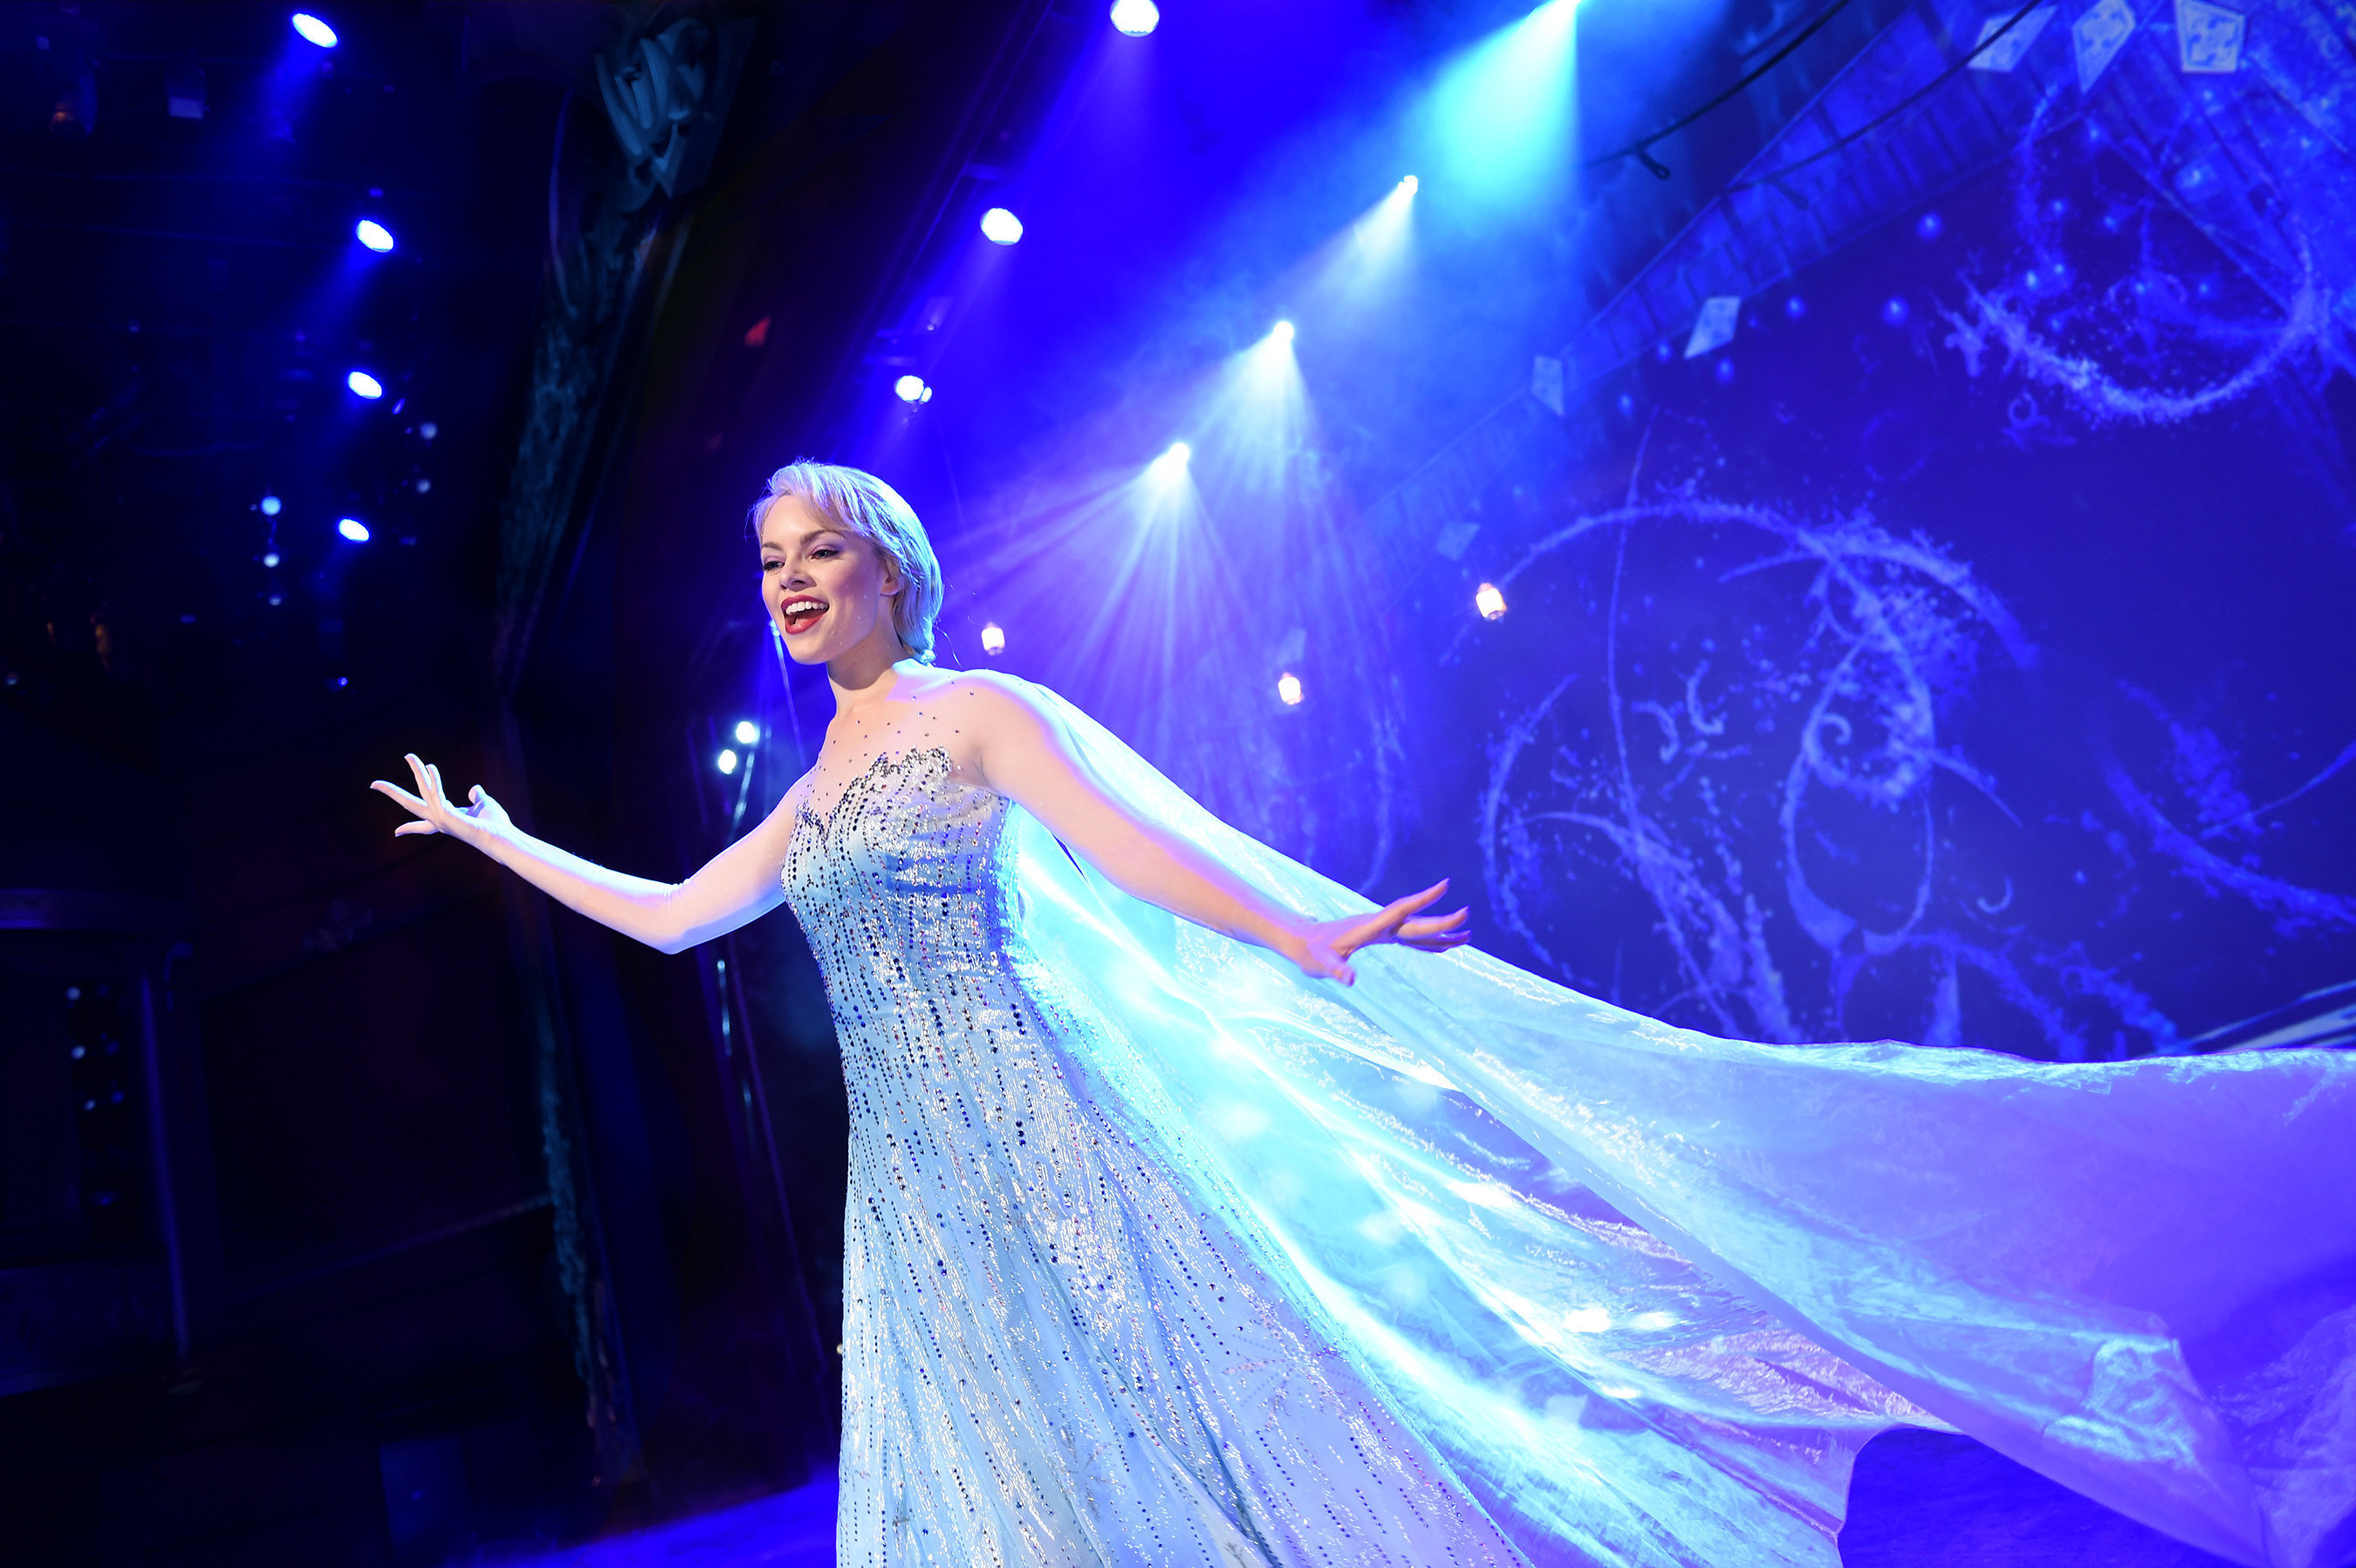 'Frozen, A Musical Spectacular' Takes the Stage Aboard Disney Cruise Line